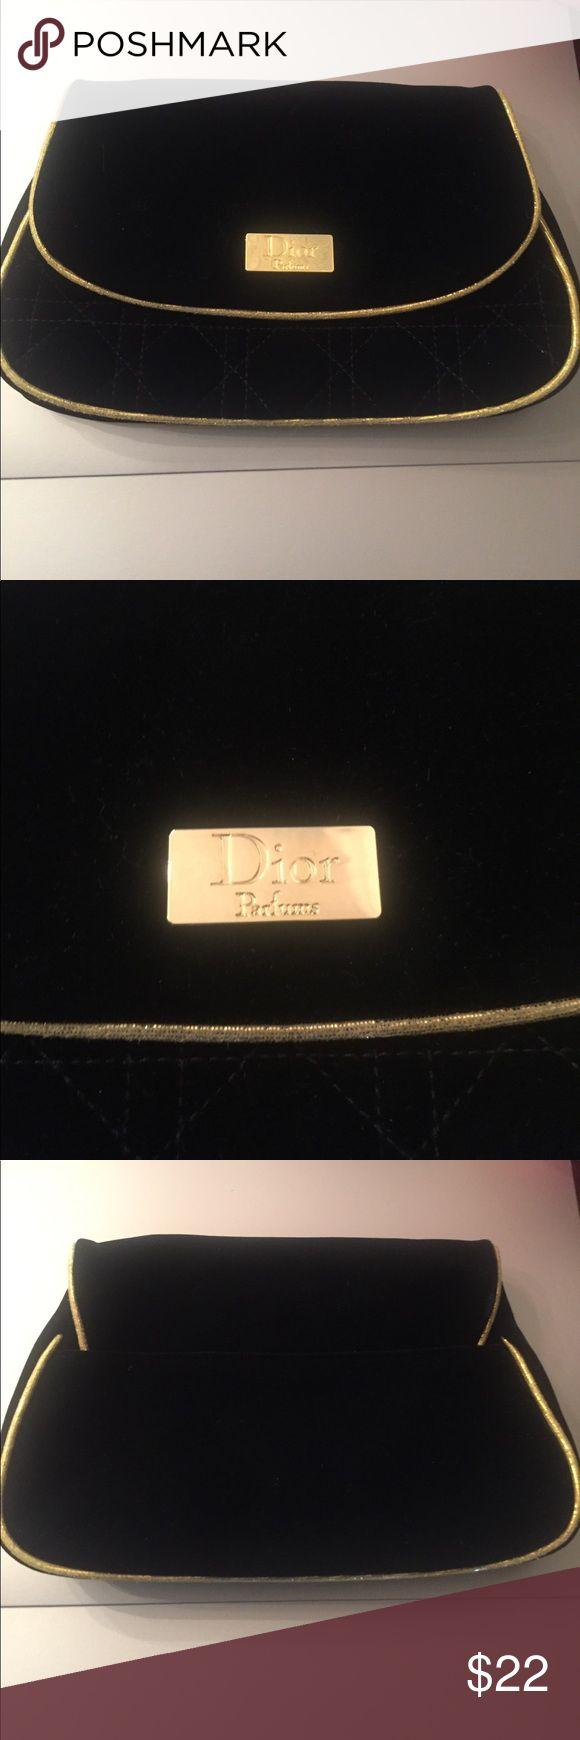 """Dior Parfums velvet makeup bag / clutch-NWOT Never used. In new condition. 8.5""""x6"""". Black Velvet and gold. Dior Bags Cosmetic Bags & Cases"""